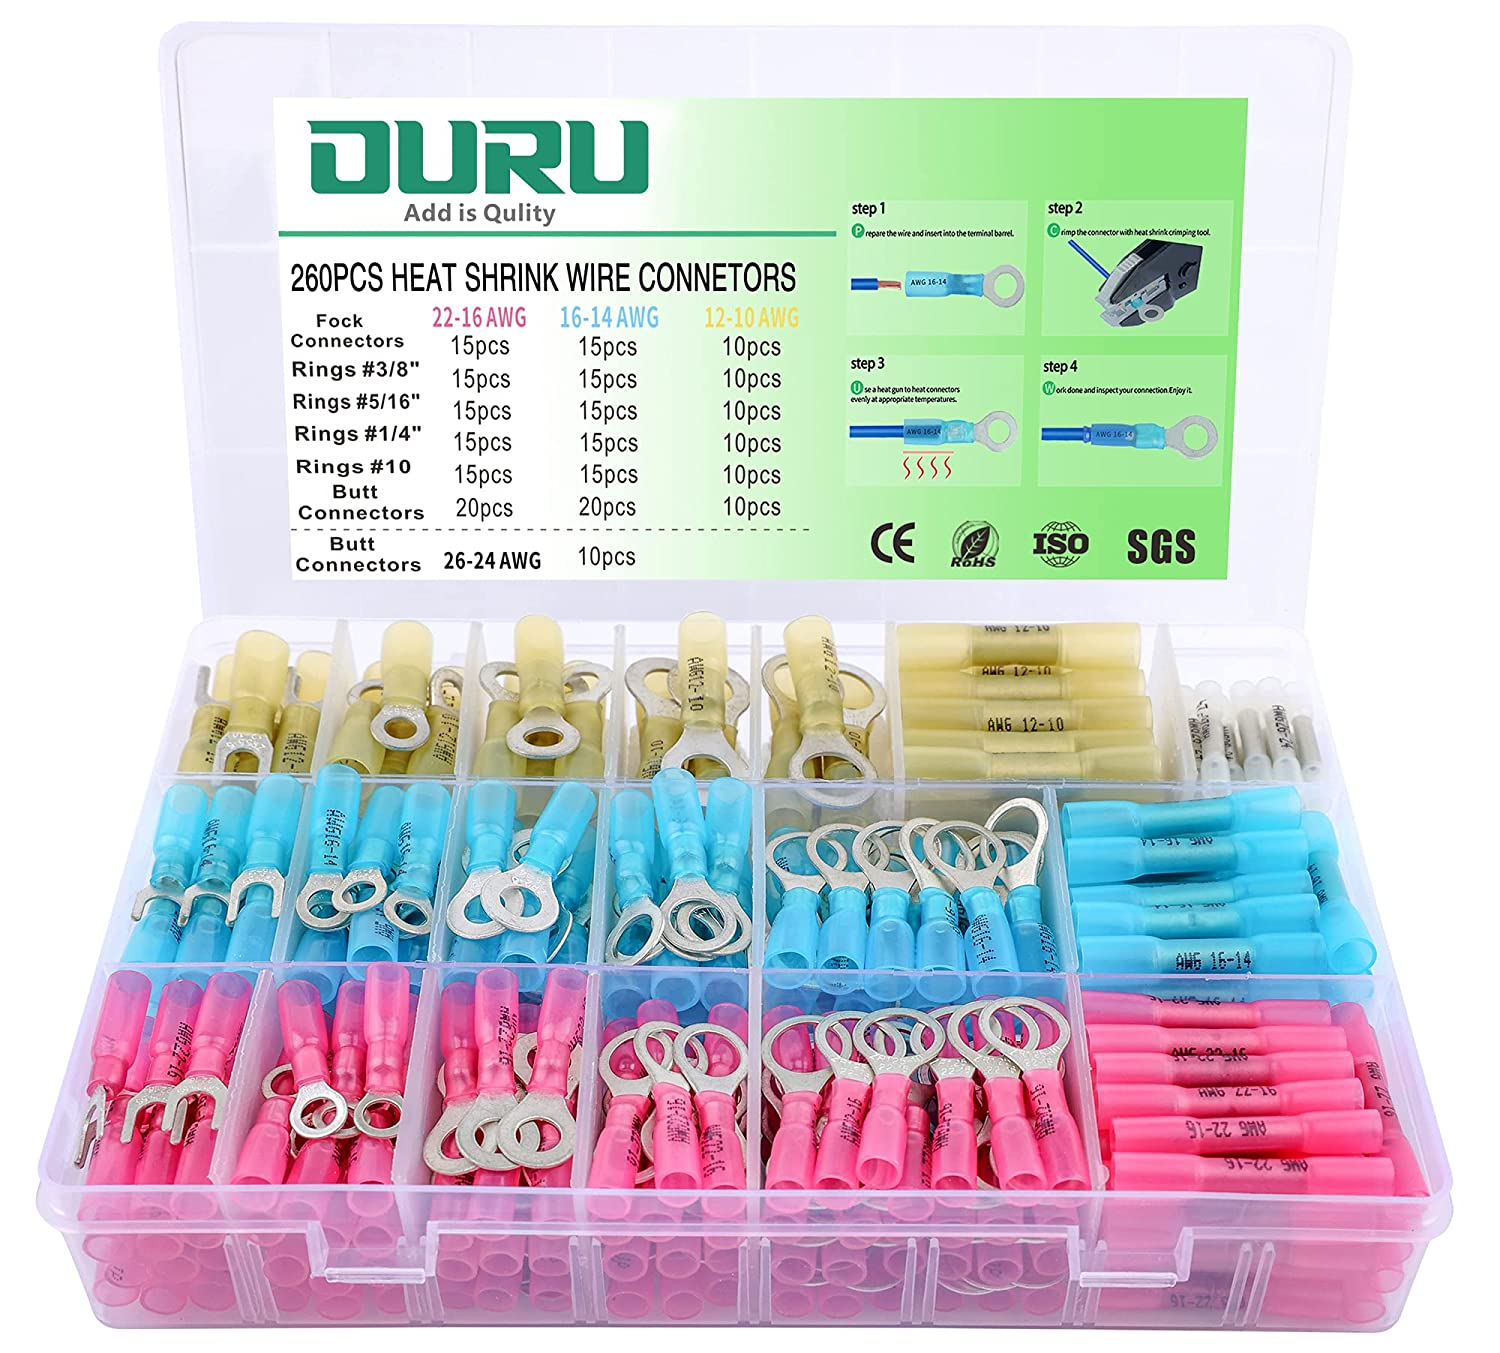 Max 59% OFF 260PCS Heat Shrink Wire OURU Grade Marine OFFicial mail order Connectors